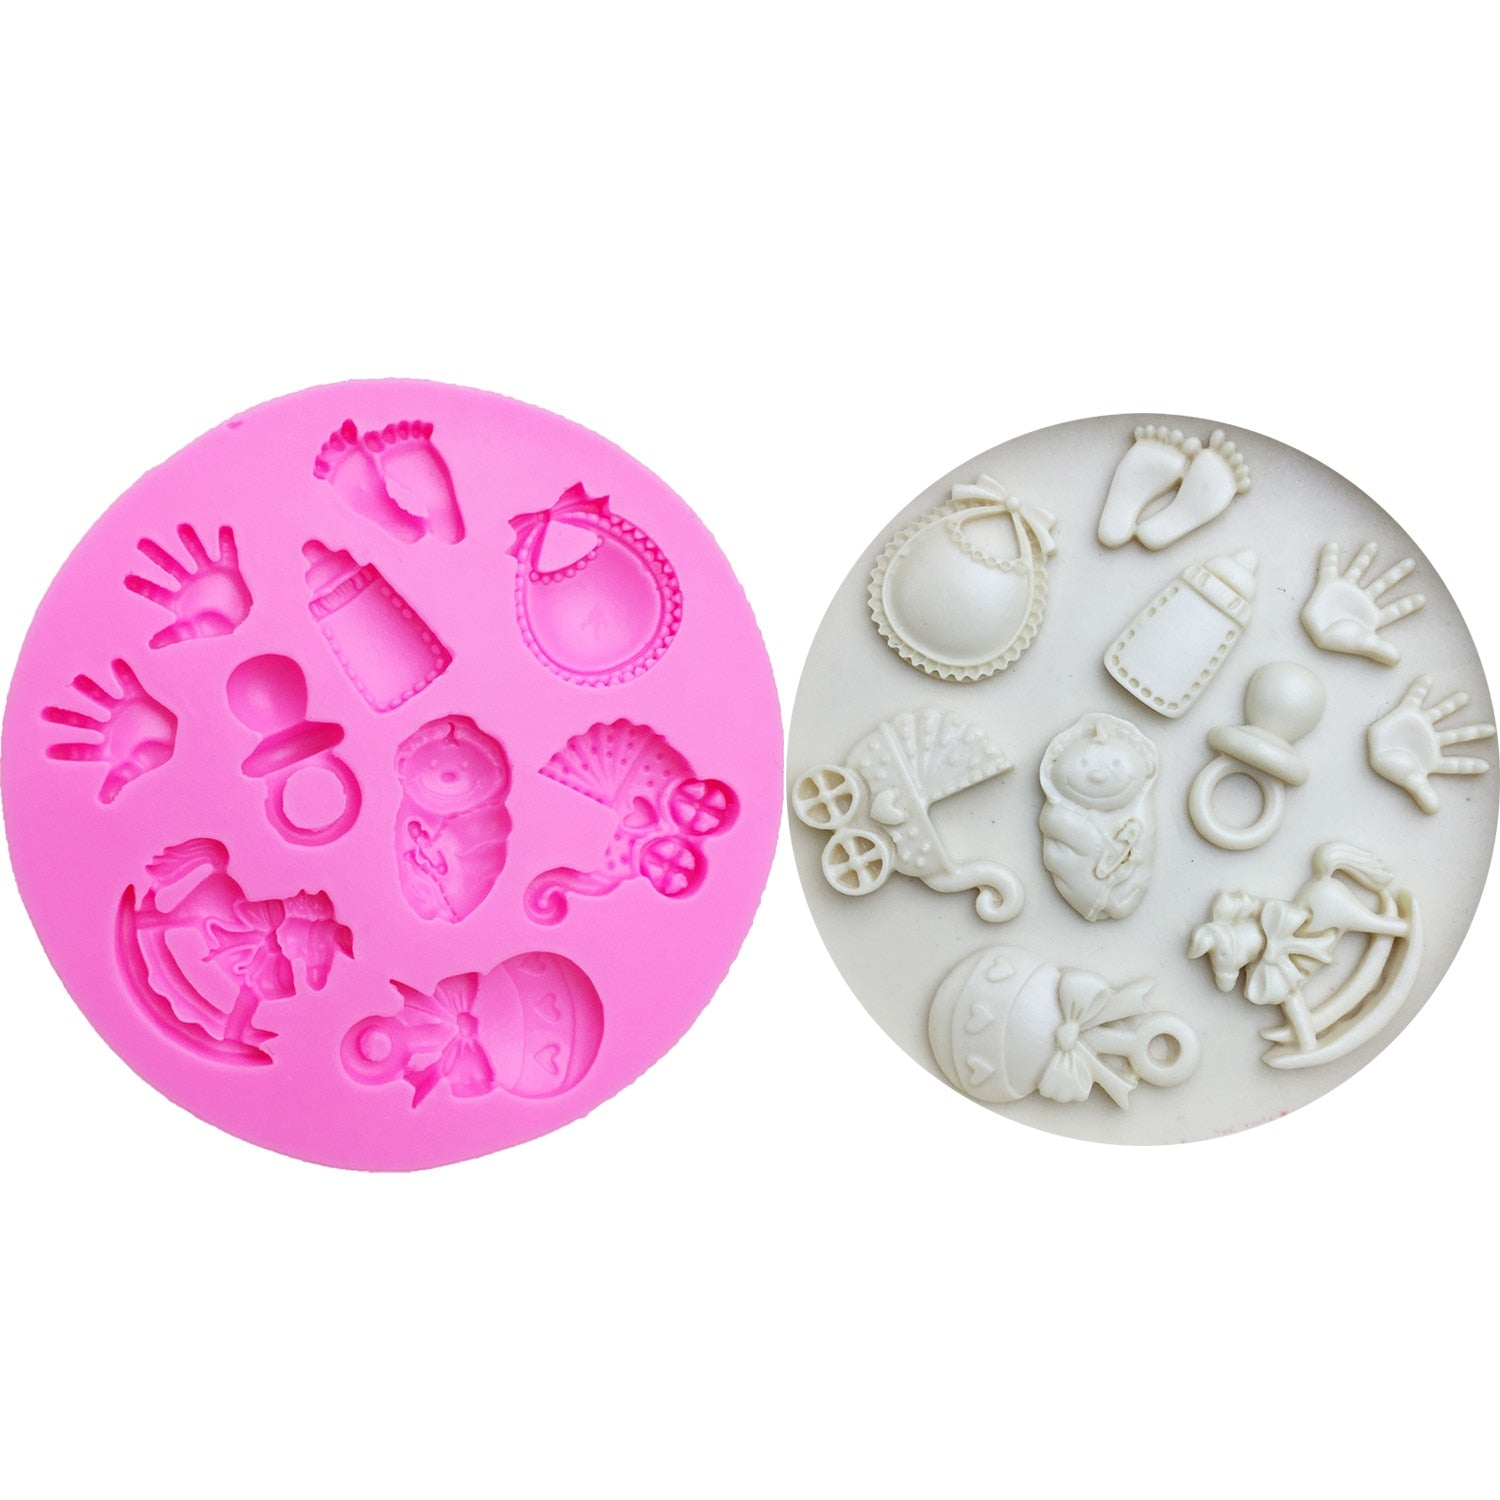 Buy OK-CHEF - Baby DIY Hand/ Trojan/Bottle/Foot/carriage Silicone Mold Cake Decoration Tools